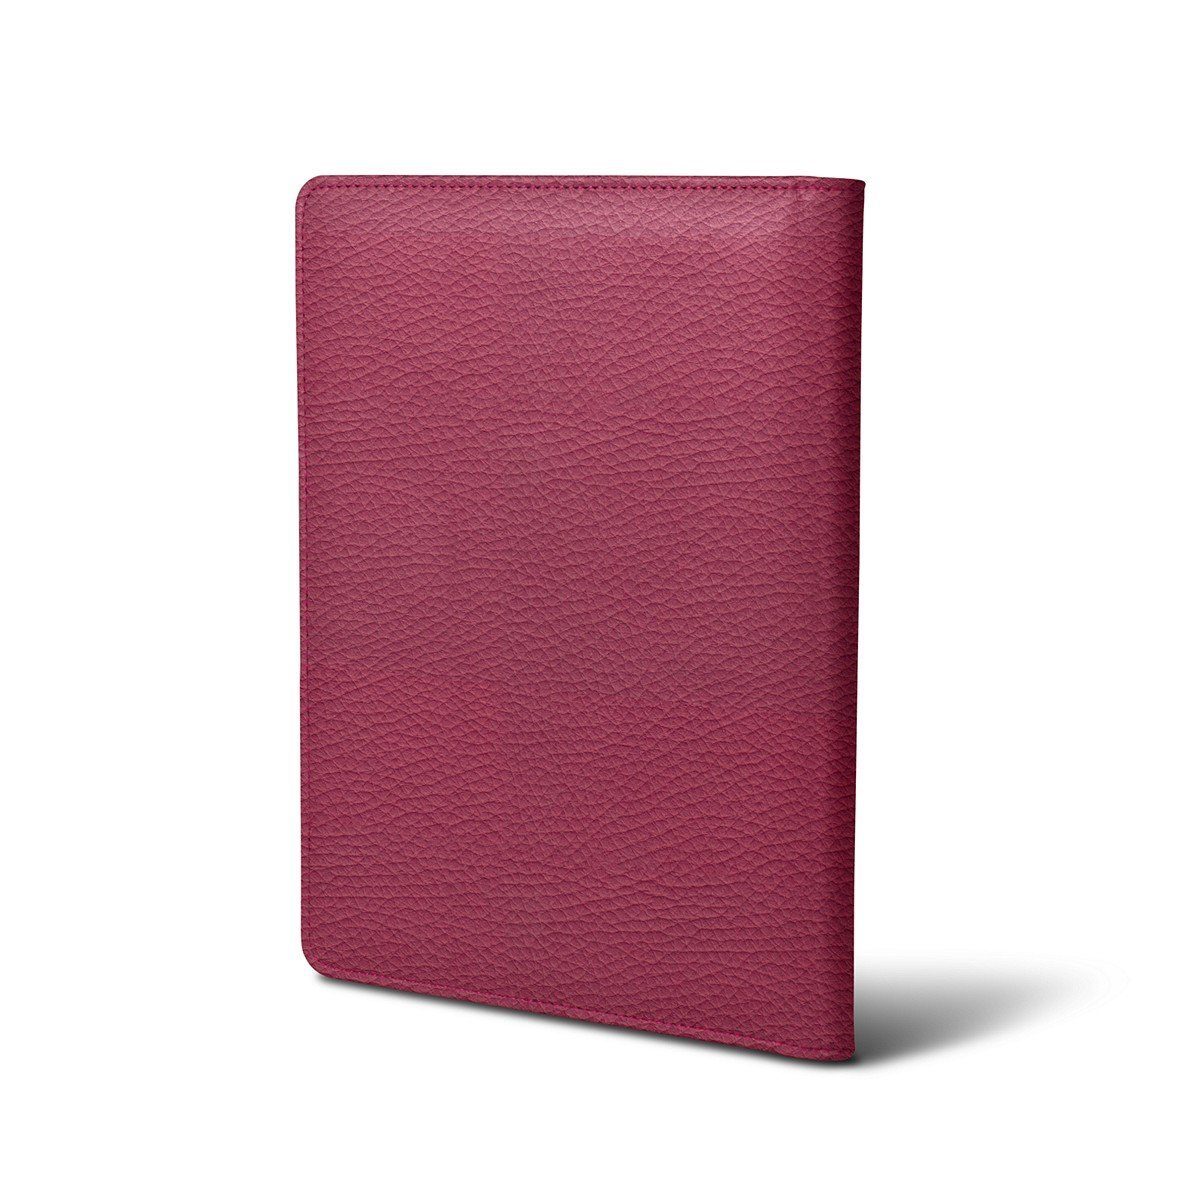 Lucrin - A5 document wallet - Fuchsia - Granulated Leather by Lucrin (Image #4)